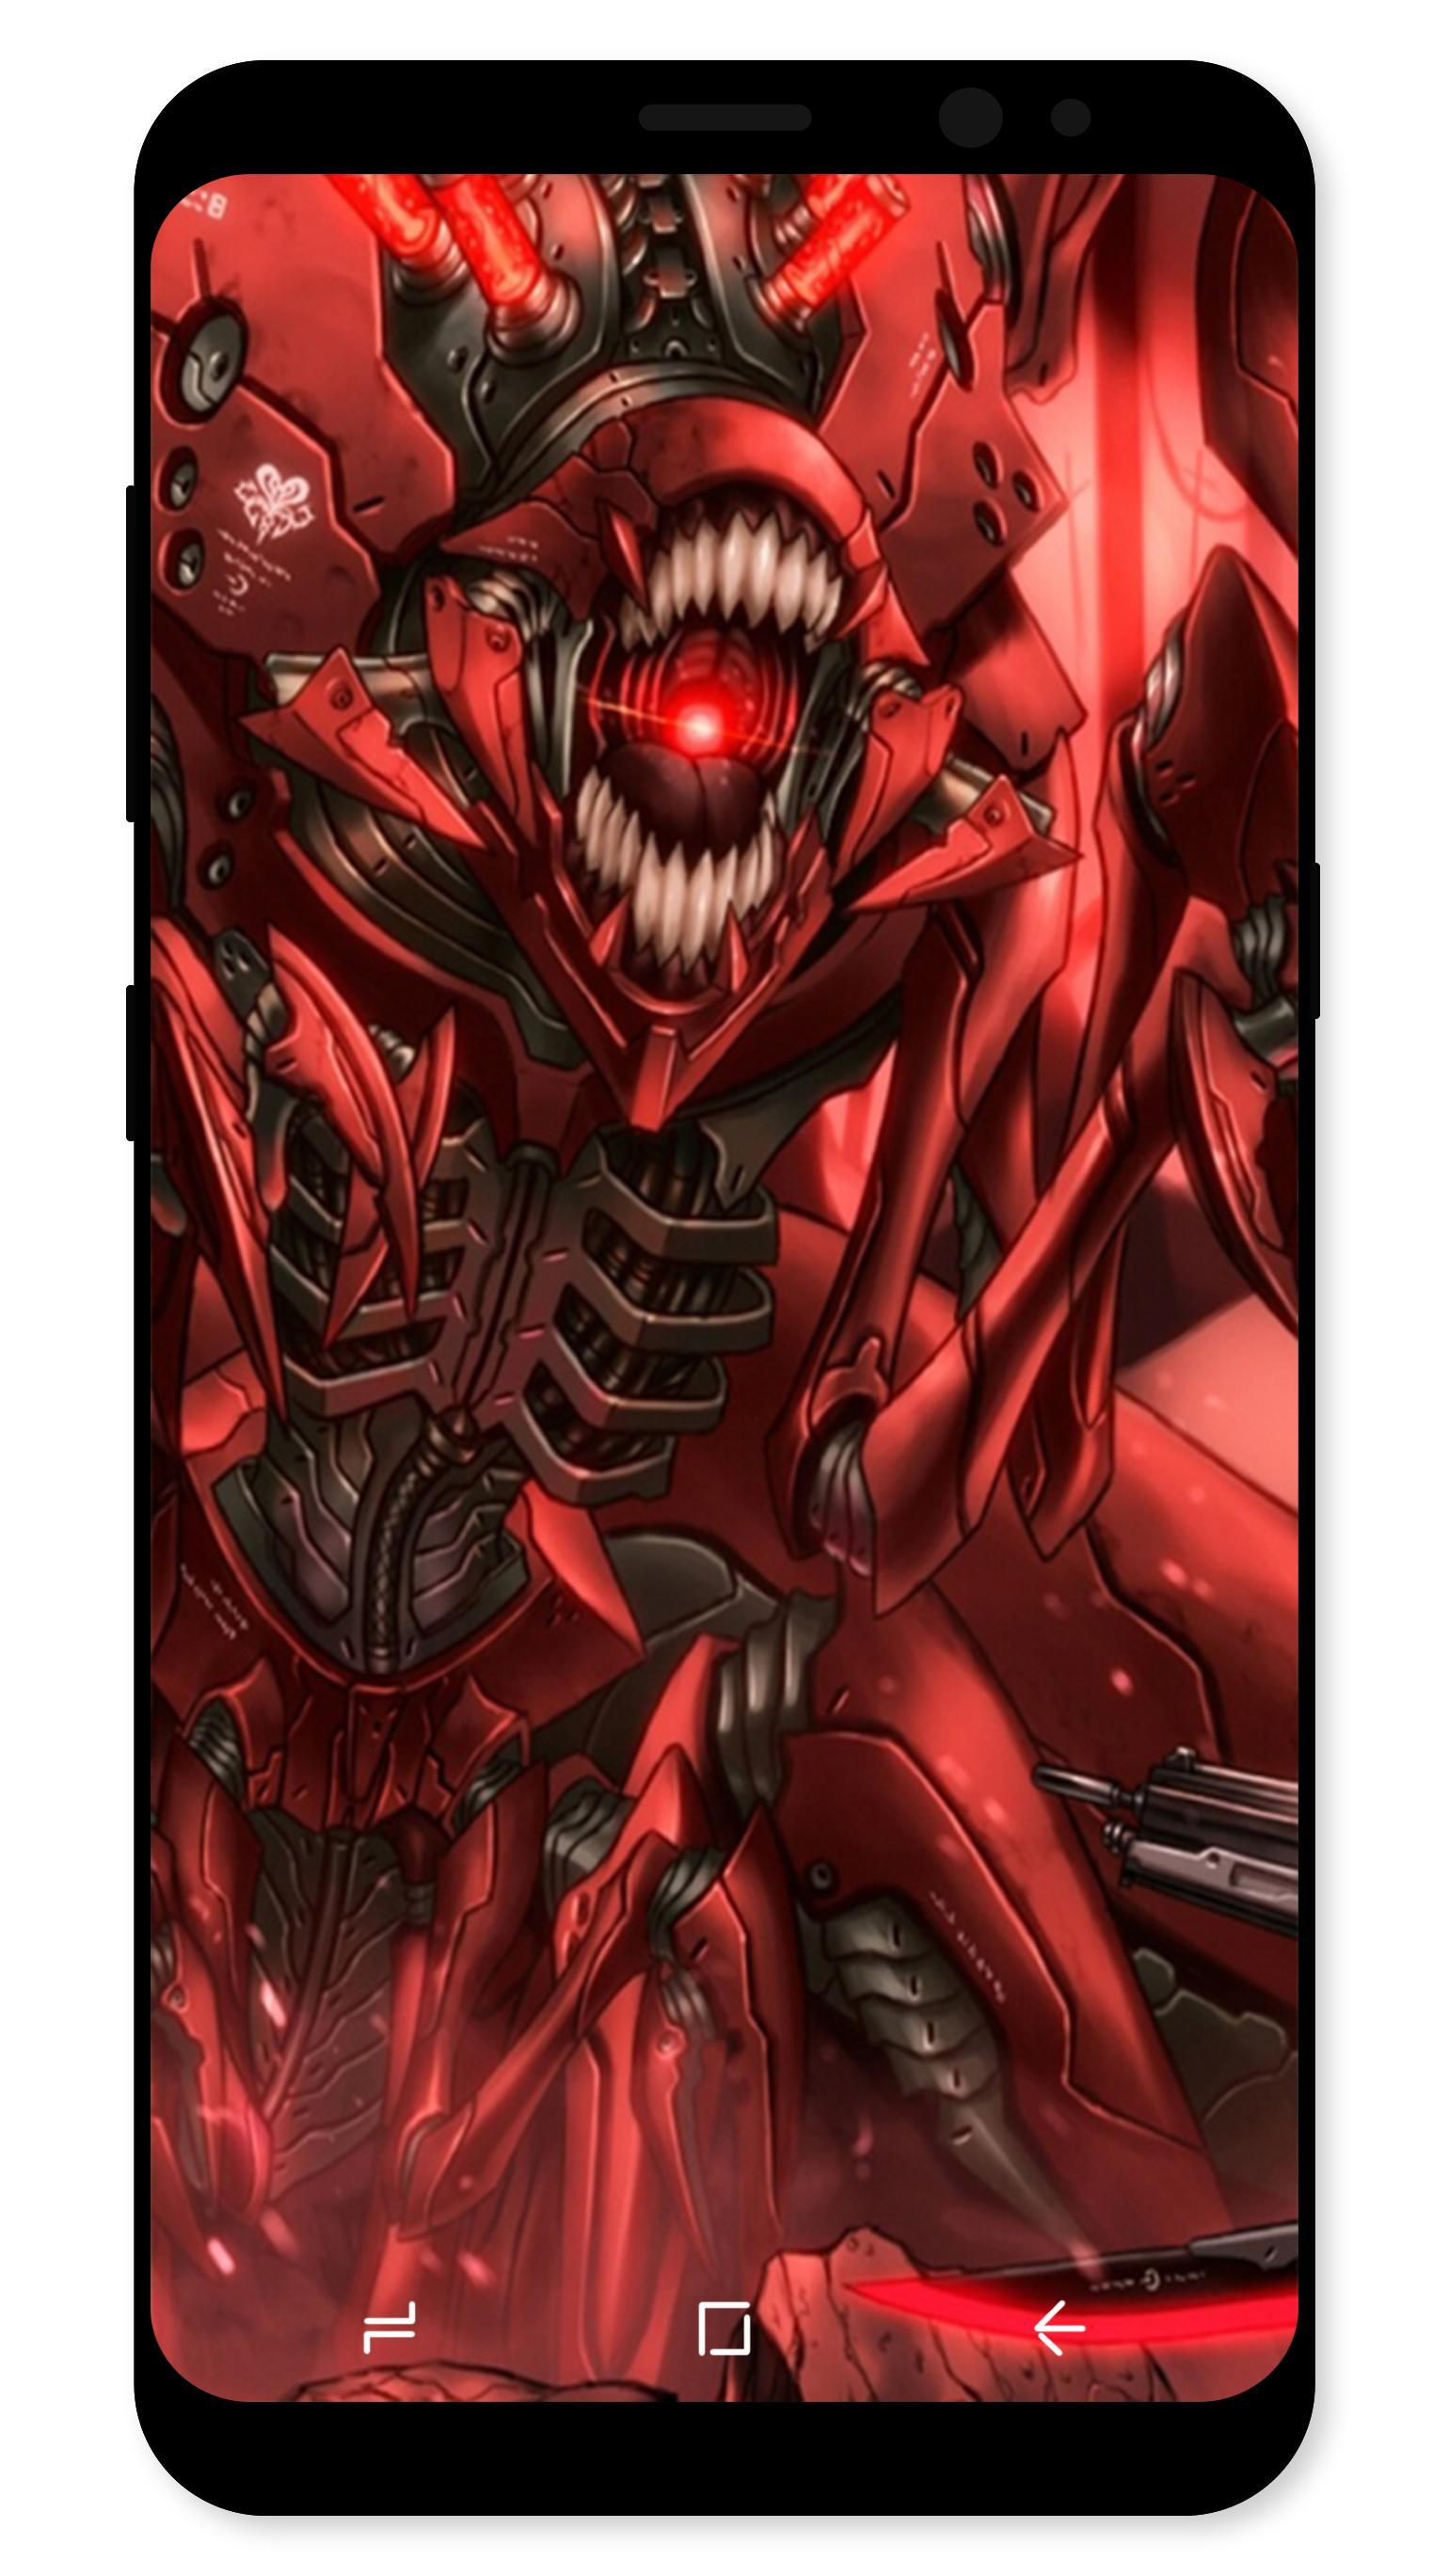 Yu Gi Oh Games And Anime Wallpaper For Android Apk Download